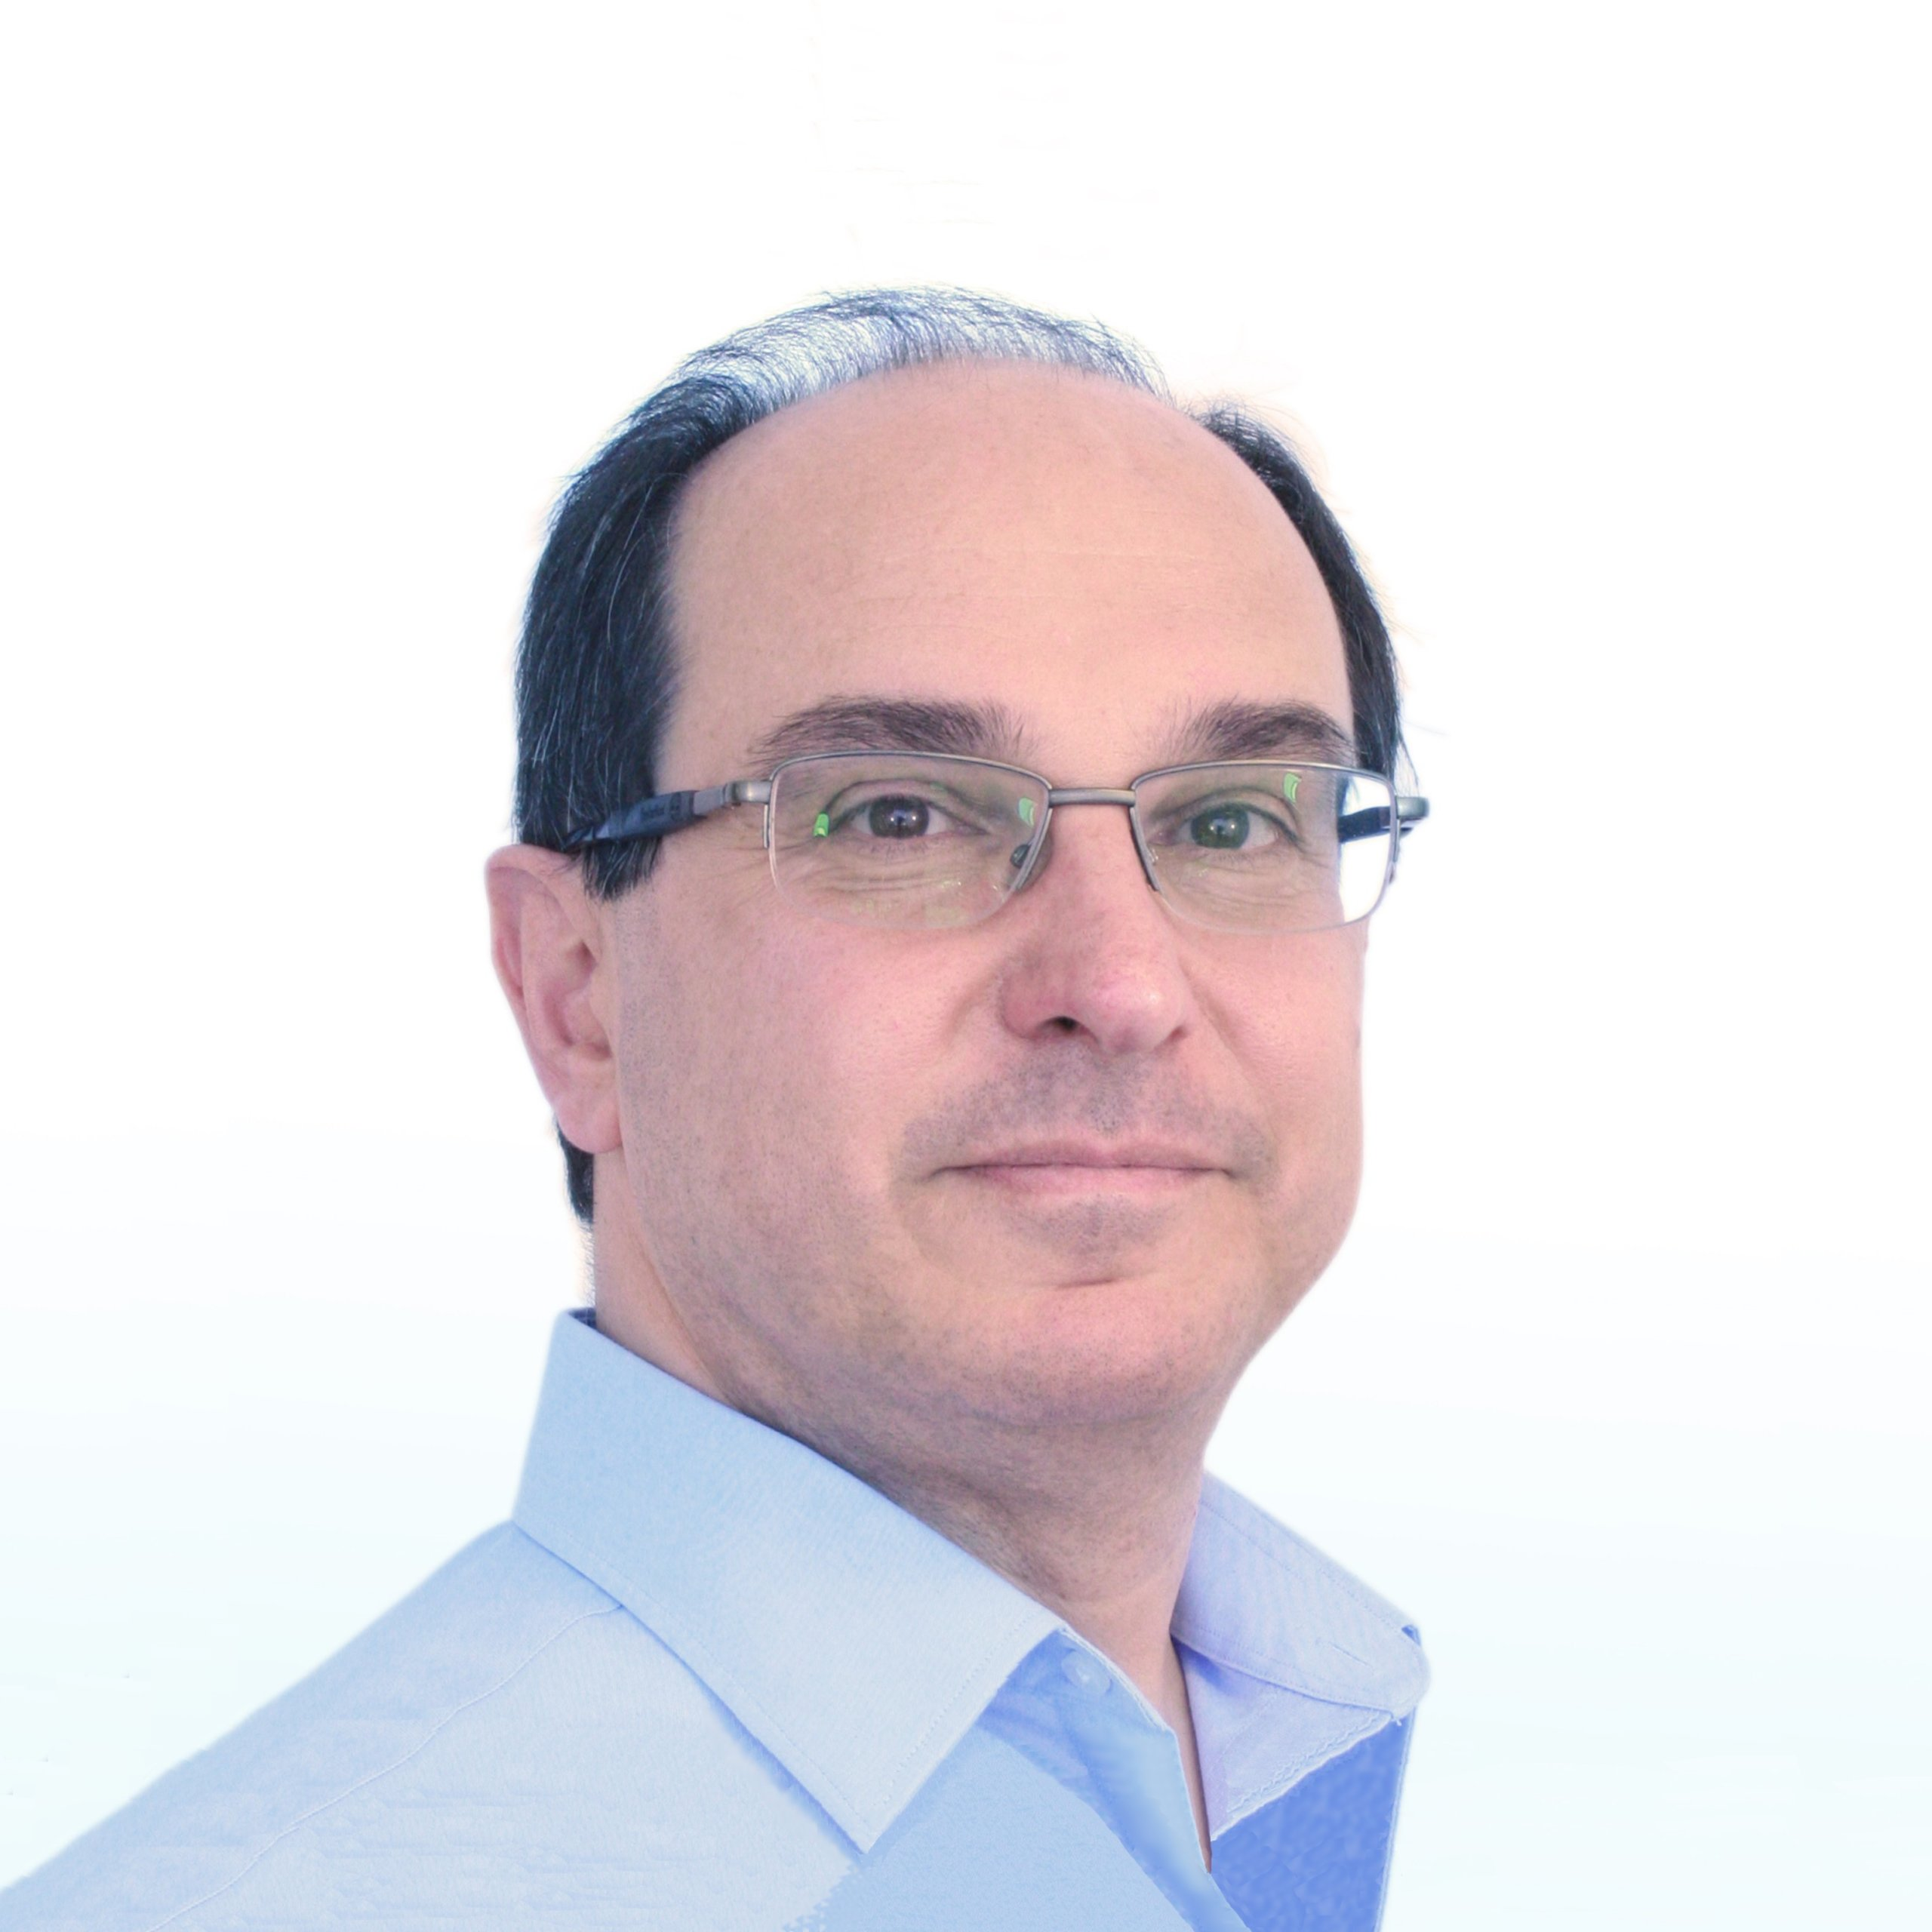 vassilis seferidis, private networks, private LTE network, private 5G network, network slicing, network splicing, network visualization , networking, GUI, network topology, dashboard, wireless, LTE, LAN, 5G, Wi-Fi, mobile, network automation, network optimisation, network visibility, network monitoring